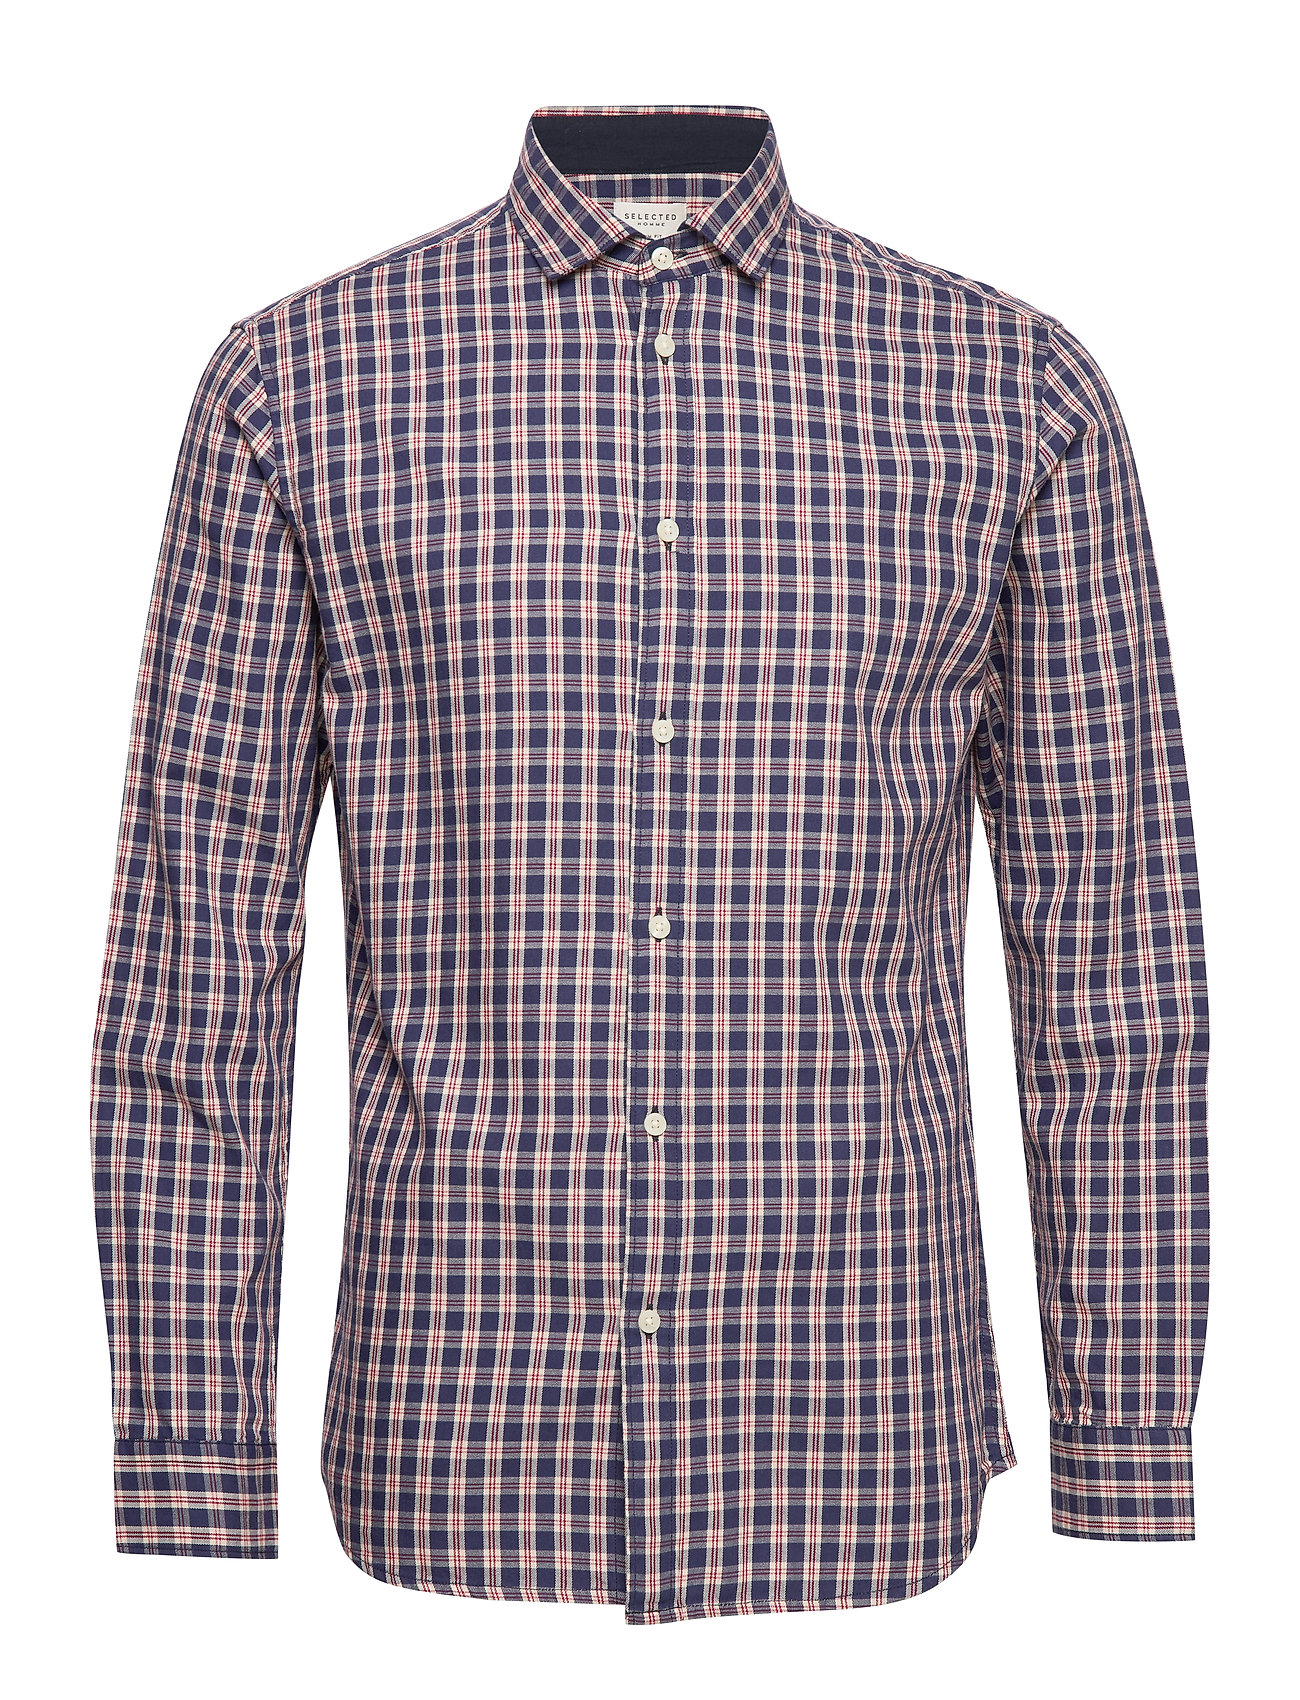 Selected Homme SLHSLIMMARK-WASHED SHIRT LS W - RED DAHLIA